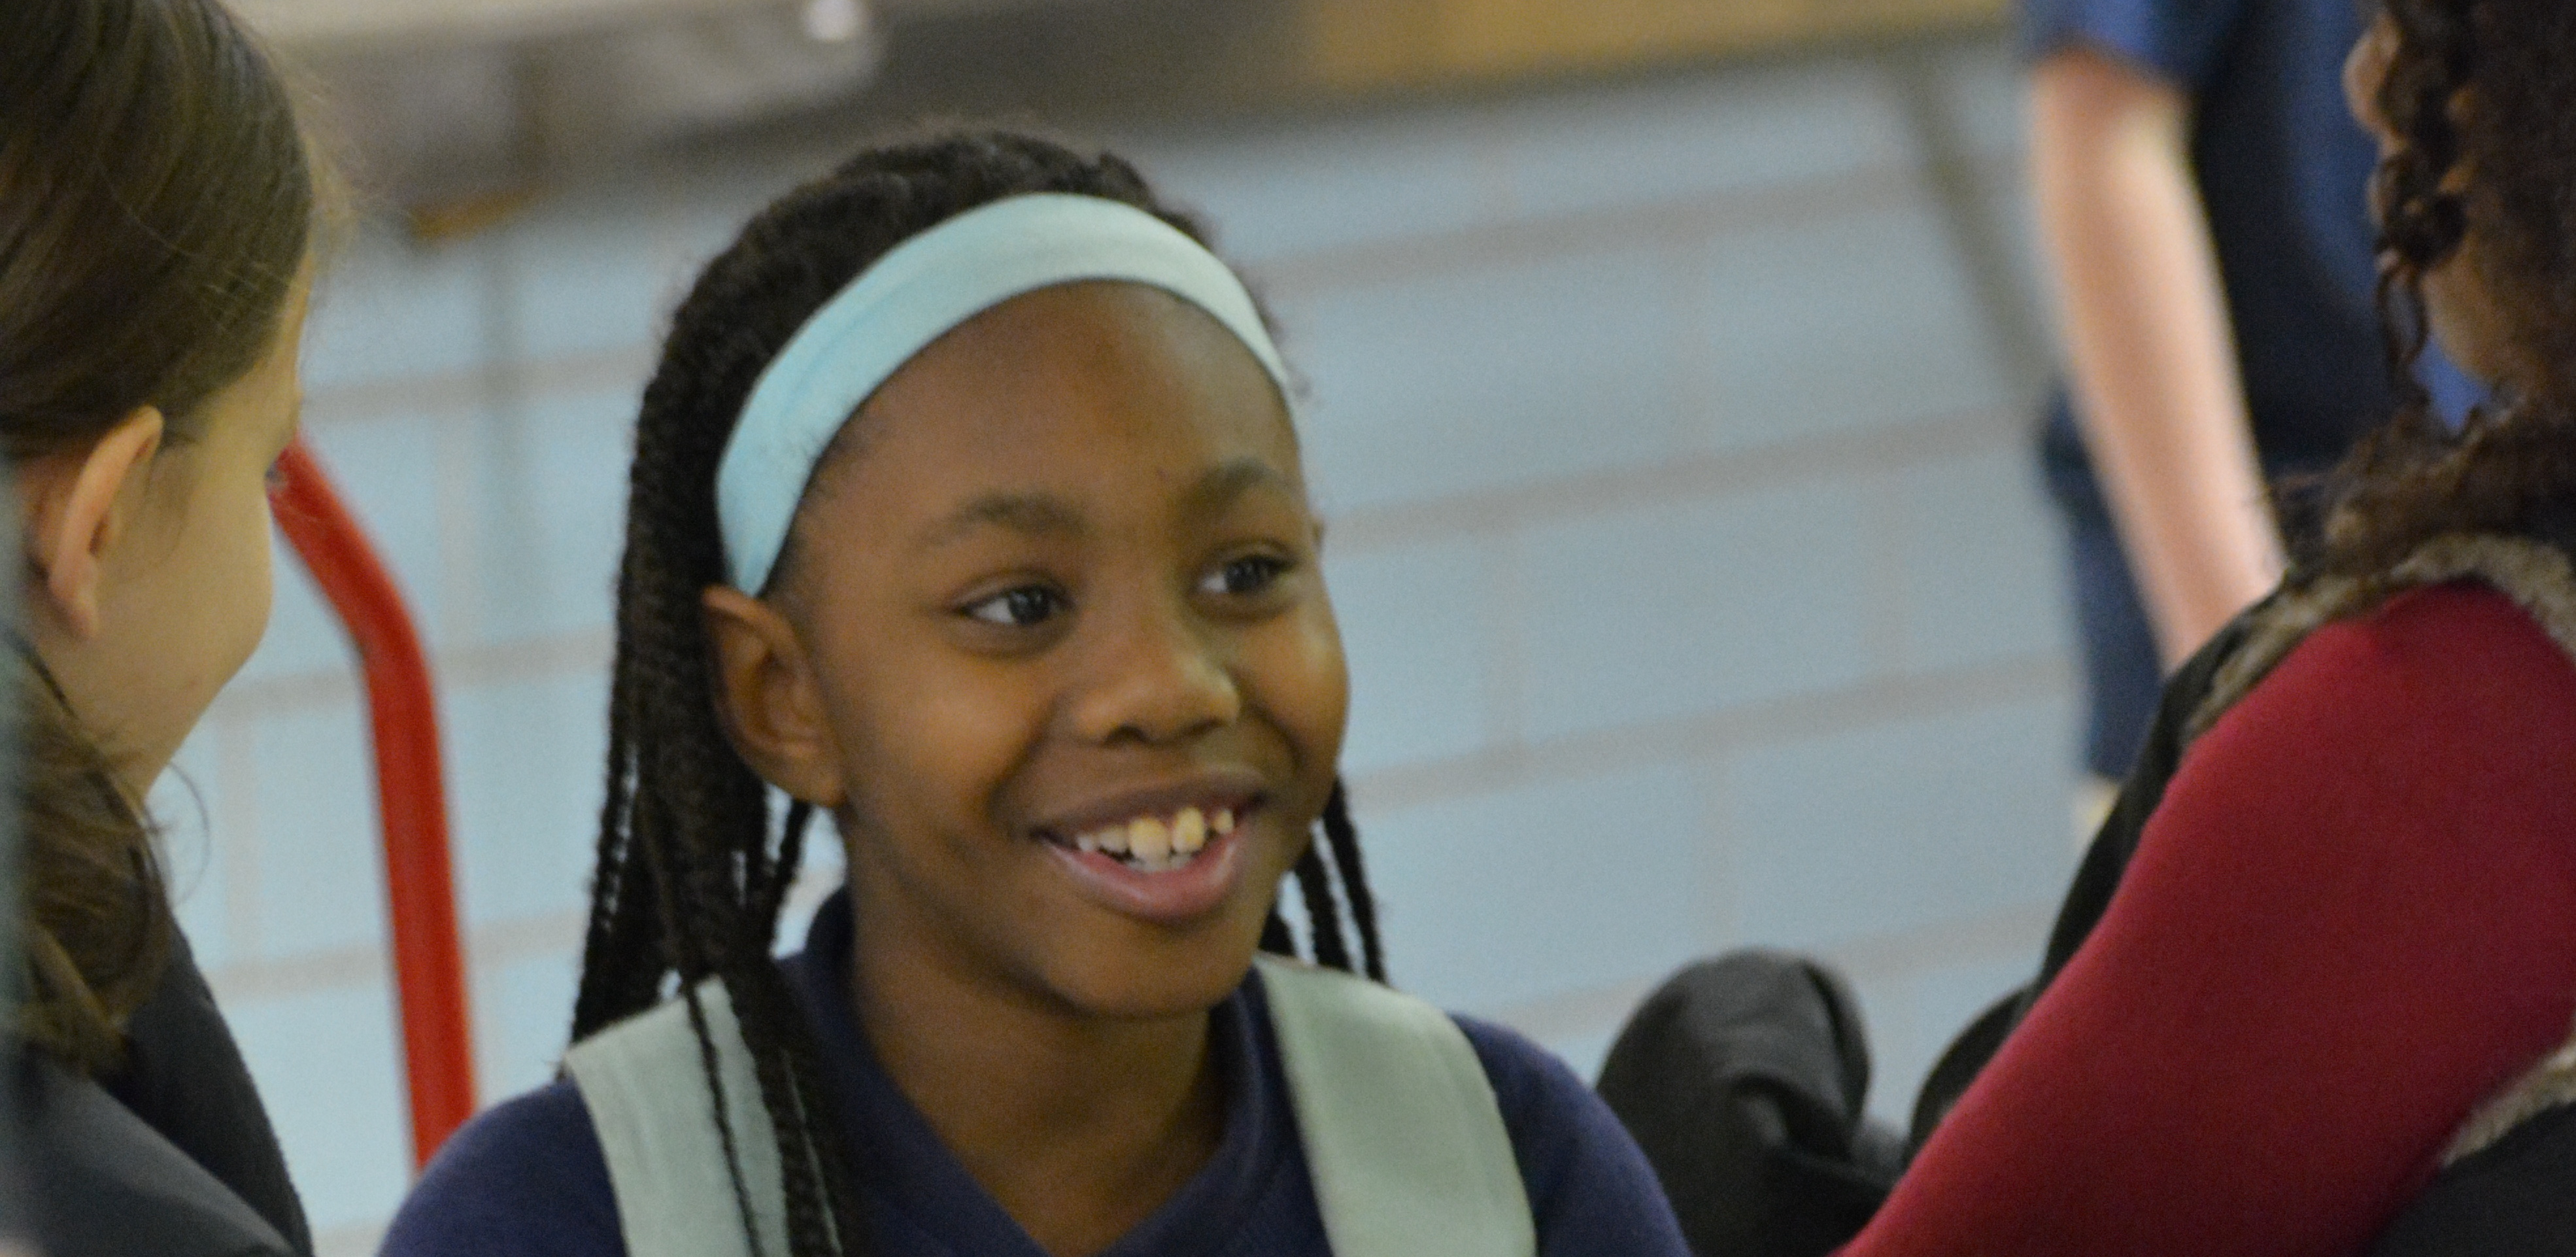 Inspire Academy student, smiling